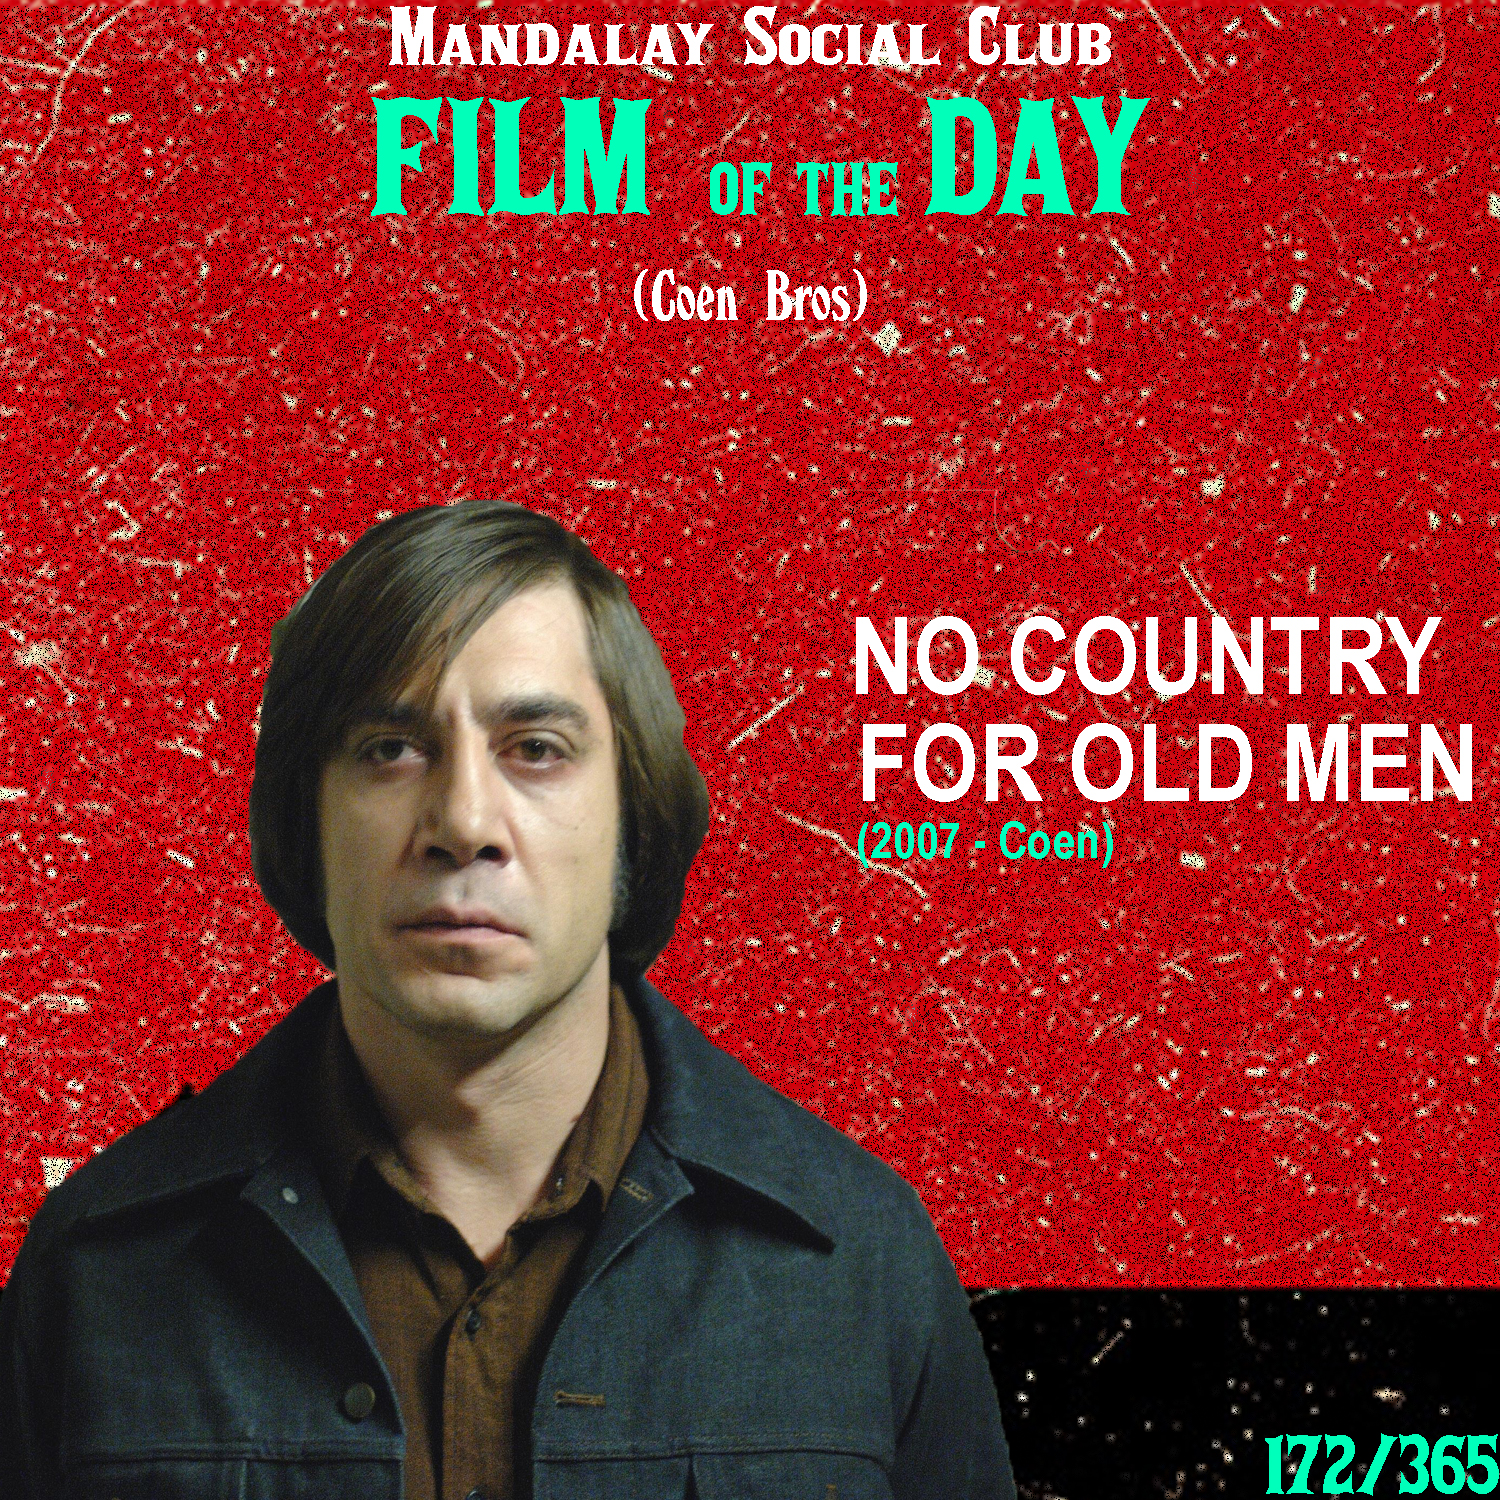 NO COUNTRY FOR OLD MEN     (dir. Coen Brothers)   After a pretty stale decade after  The Big Lebowski , the Coen Brother's reintroduced themselves to the world of cinema with  No Country for Old Men , a Neo-western that essentially redefined the genre forever.  Josh Brolin stars as Llewelyn Moss, a Texan welder who stumbles upon the remains fo a drug deal turned sour. In a deserted truck he sees piles of cash that he decides to take with him. However, hot on his trail is the demonically intimidating Javier Bardem as Chigurh, a killer sent out to recover and punish Moss for taking what isn't his.  The Coen's created this film in the vein of one of our favorite directors here, Sam Peckinpah, and through it re-created the Western genre altogether. Javier Bardem gives the performance of a lifetime as Chigurh and helped bring to life one of the most manically intense villains to ever grace the silver screen. As I said above, this film re-introduced the Coen's to the limelight and in turn gave the Coen's a revitalized and energizing feeling that's stuck with them from this point onwards in their journey as filmmakers.    5/5     WATCH: Netflix